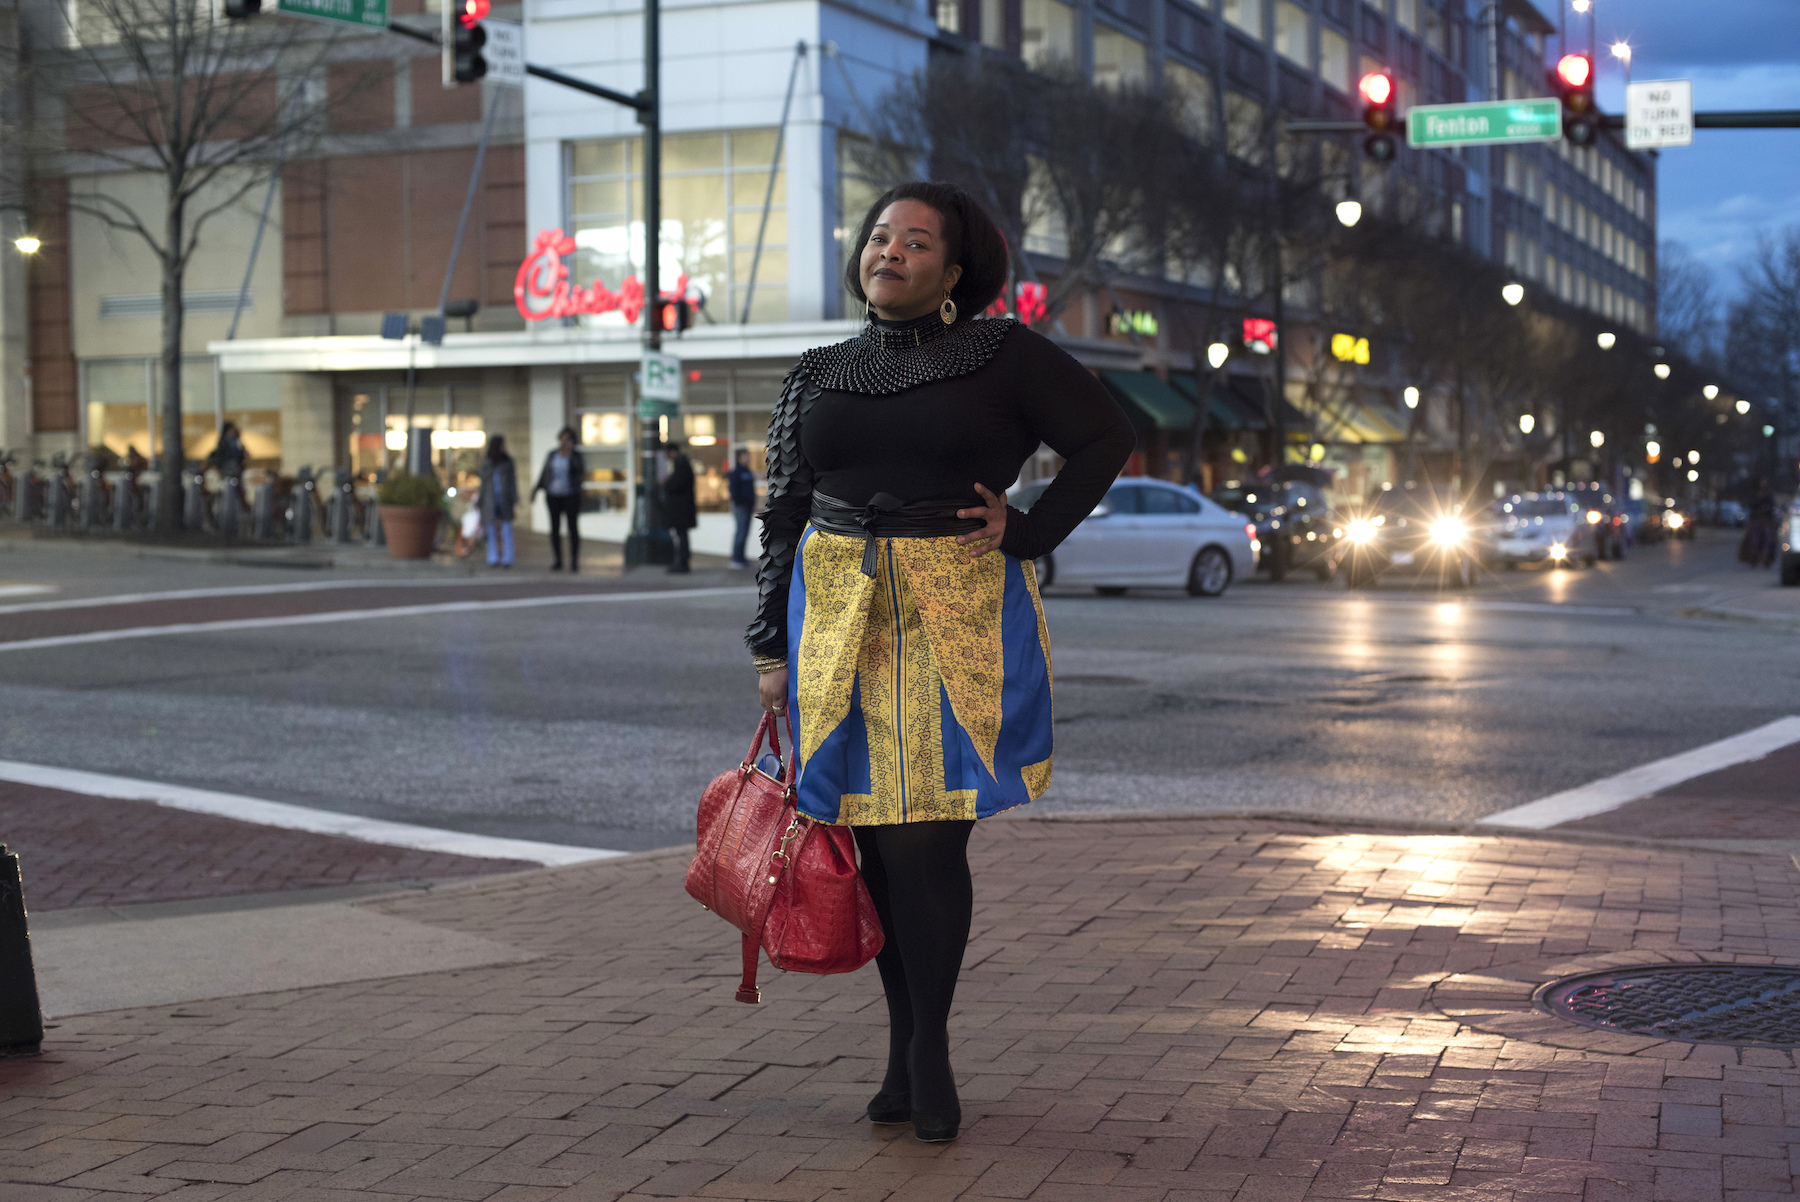 "<div class=""meta image-caption""><div class=""origin-logo origin-image ap""><span>AP</span></div><span class=""caption-text"">Nicole Moore dressed in Wakanda-inspired attire poses for a portrait before seeing Black Panther in Silver Spring, Md., Thursday, Feb. 15, 2018. (AP Photo/Sait Serkan Gurbuz)</span></div>"